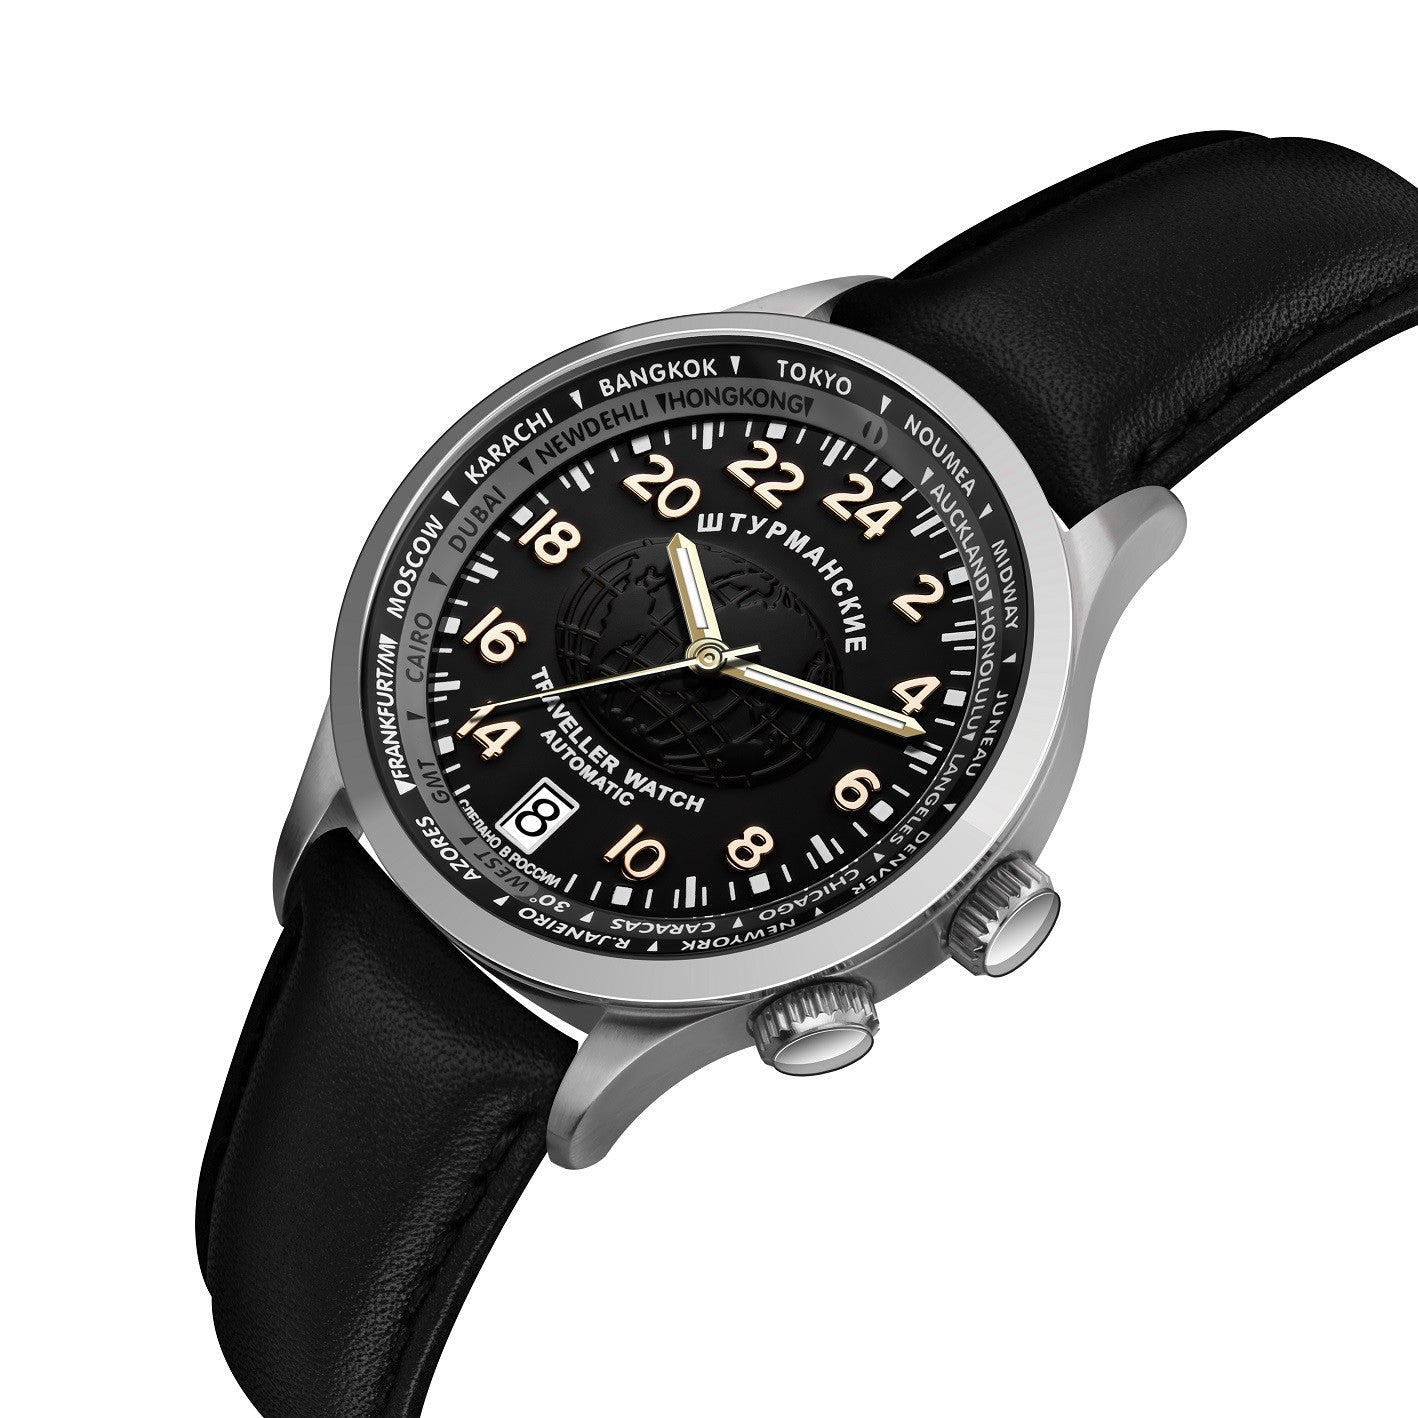 Sturmanskie Automatic Travellers Watch 2431/2255289 - Watchfinder General - UK suppliers of Russian Vostok Parnis Watches MWC G10  - 2